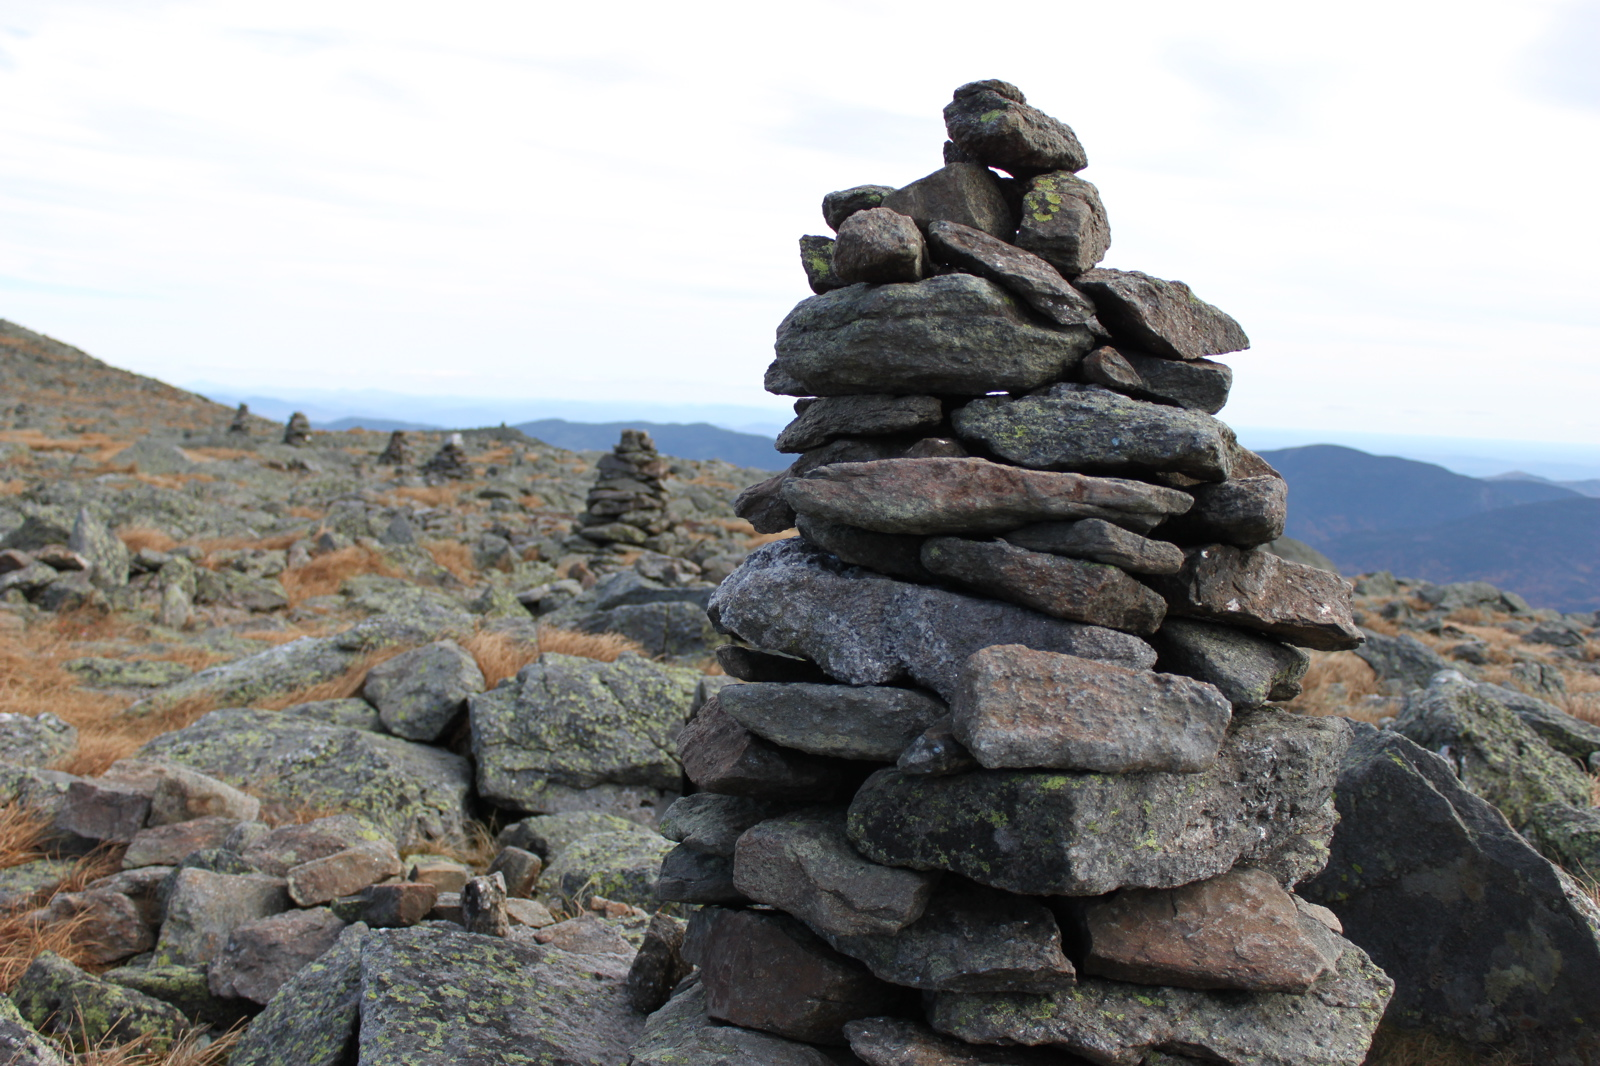 Cairns on the Mount Washington Auto Road - White Mountains, New Hampshire